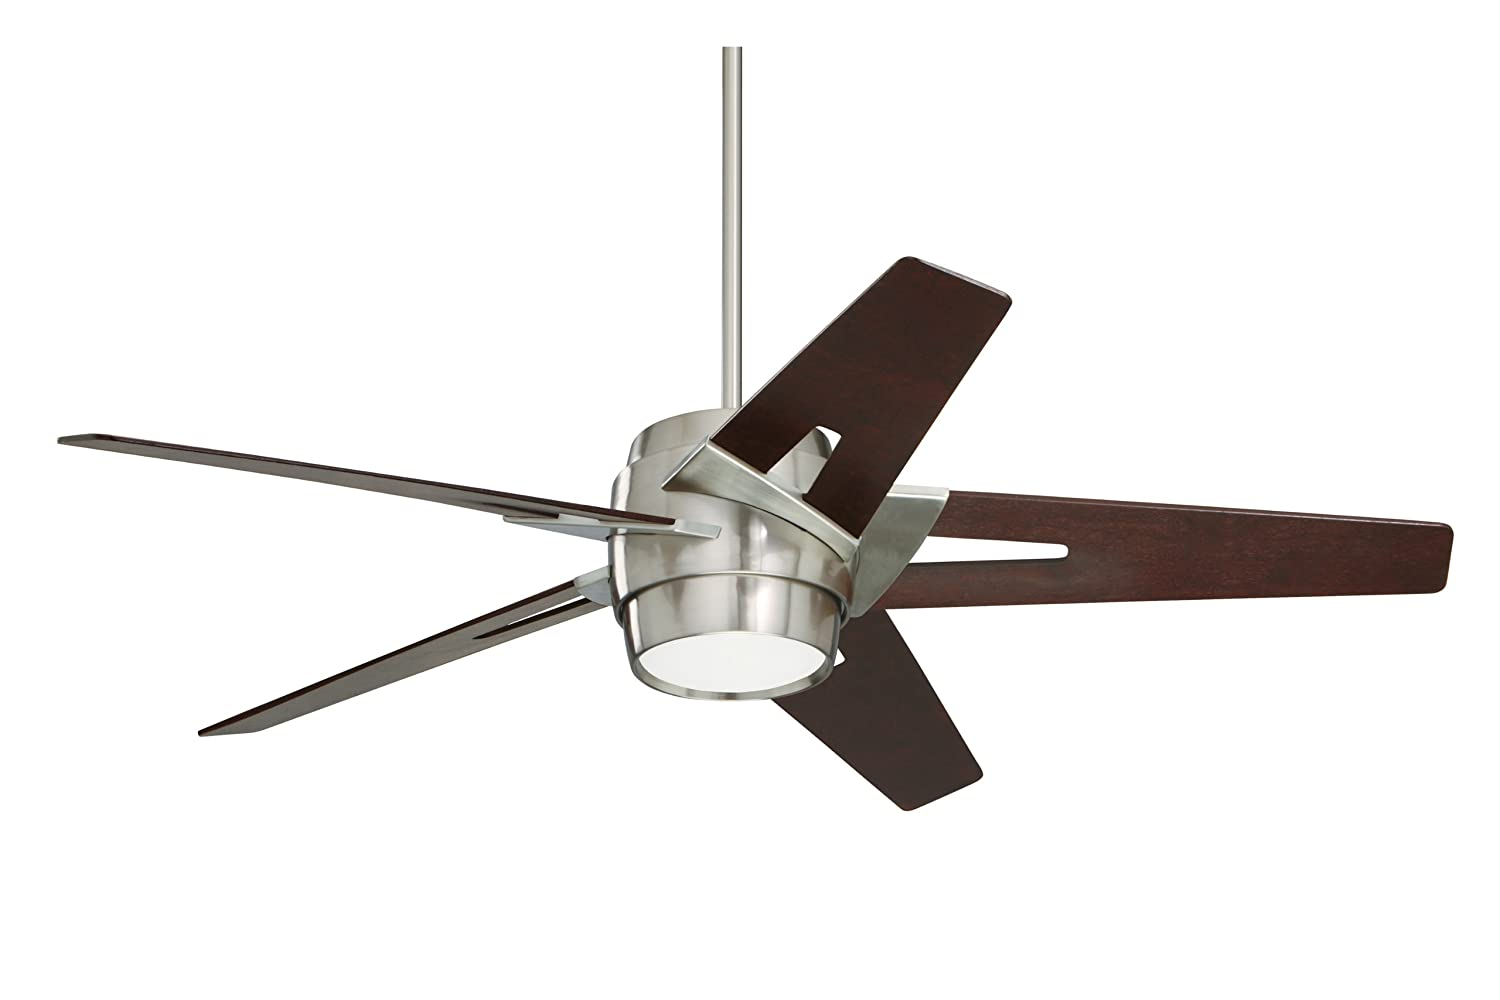 Emerson Ceiling Fans Cf550dmbs Luxe Eco Modern With Fan Wiring Diagram On Motor Light And Wall Control 54 Inch Blades Brushed Steel Finish Close To